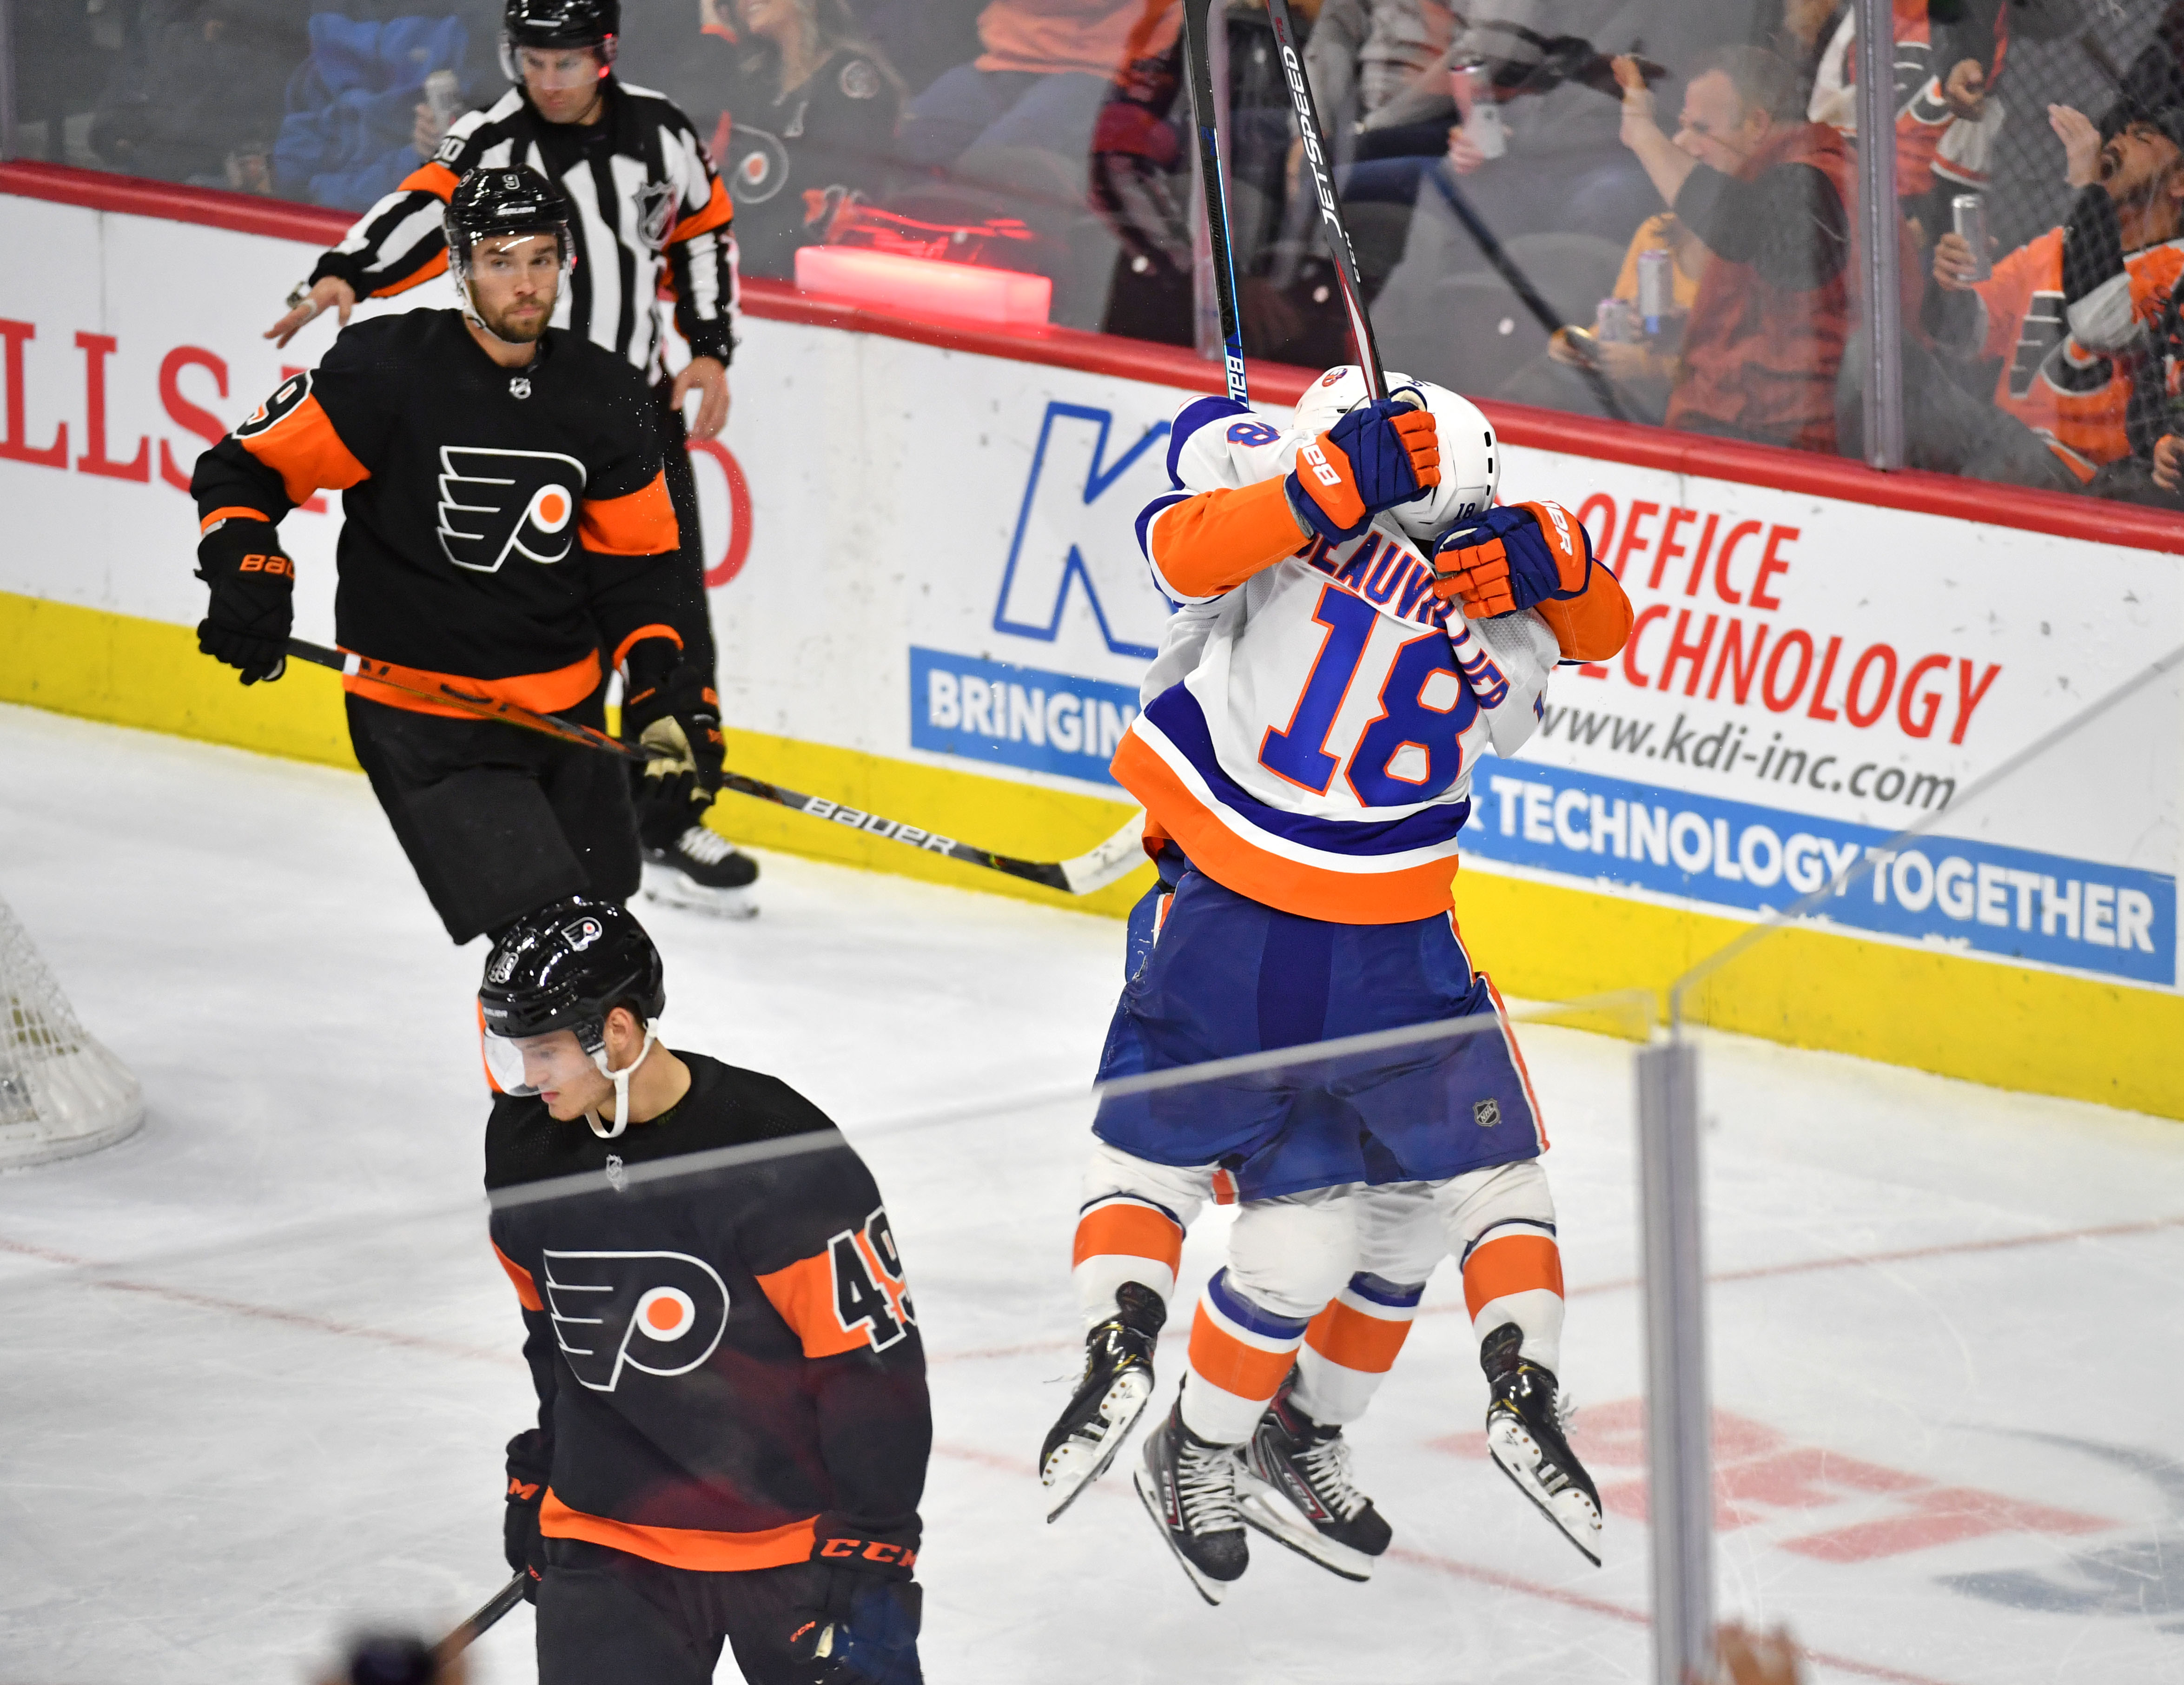 Islanders rally in third to defeat Flyers 4-3 in Shootout